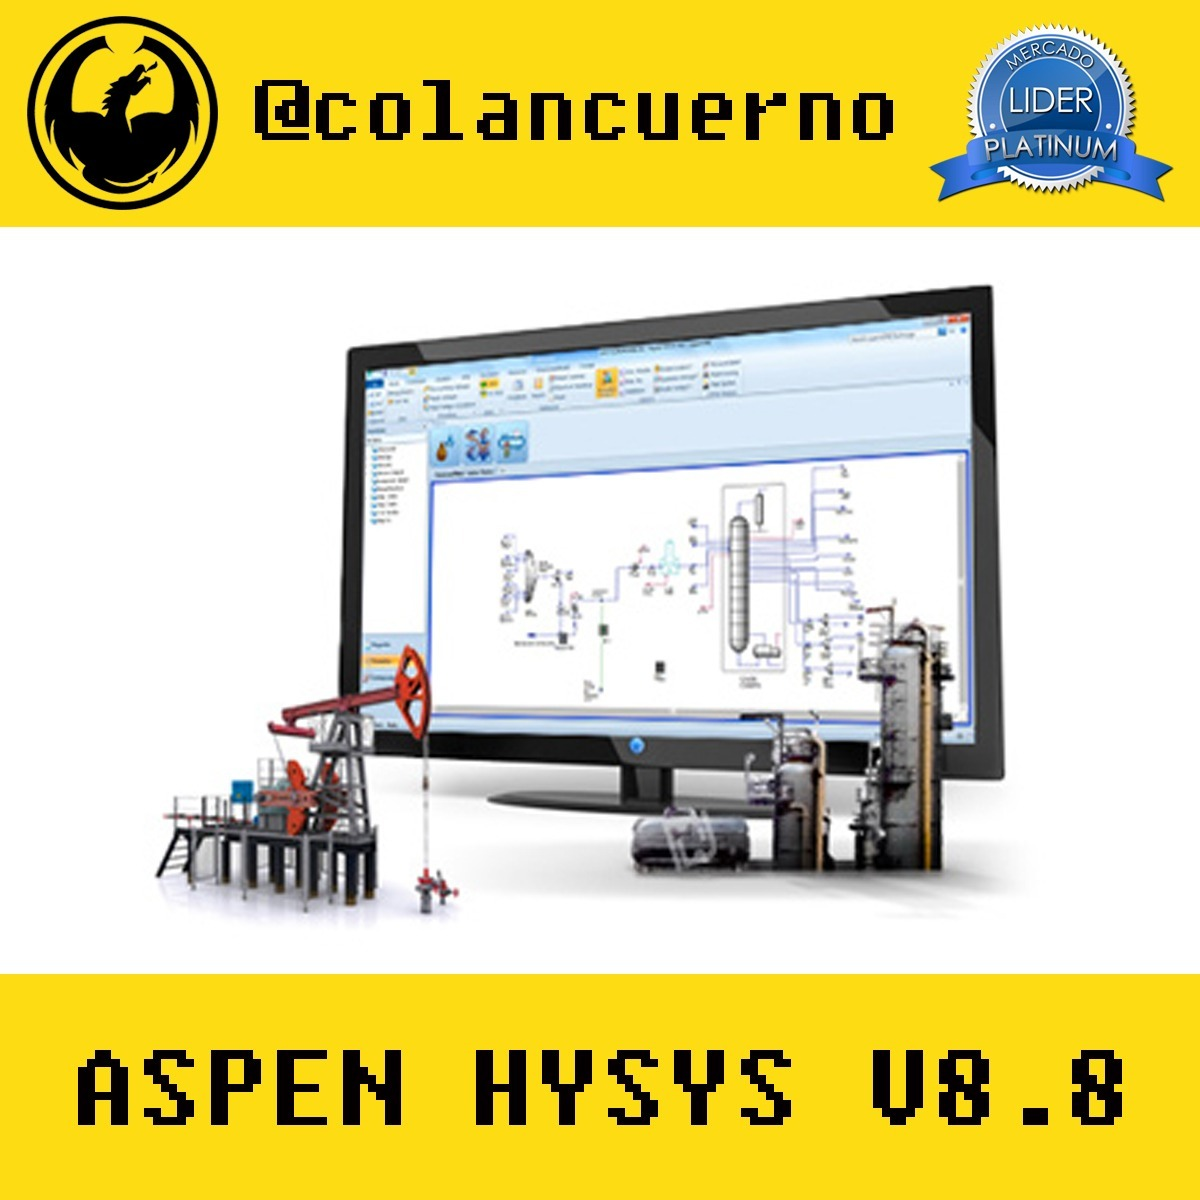 Hysys V8 Manual Deere 4440 Tractor Wiring Diagram On 2003 Kia Sorento Parts Array Aspen 8 De Uso Bs 8995 En Mercado Libre Rh Articulo